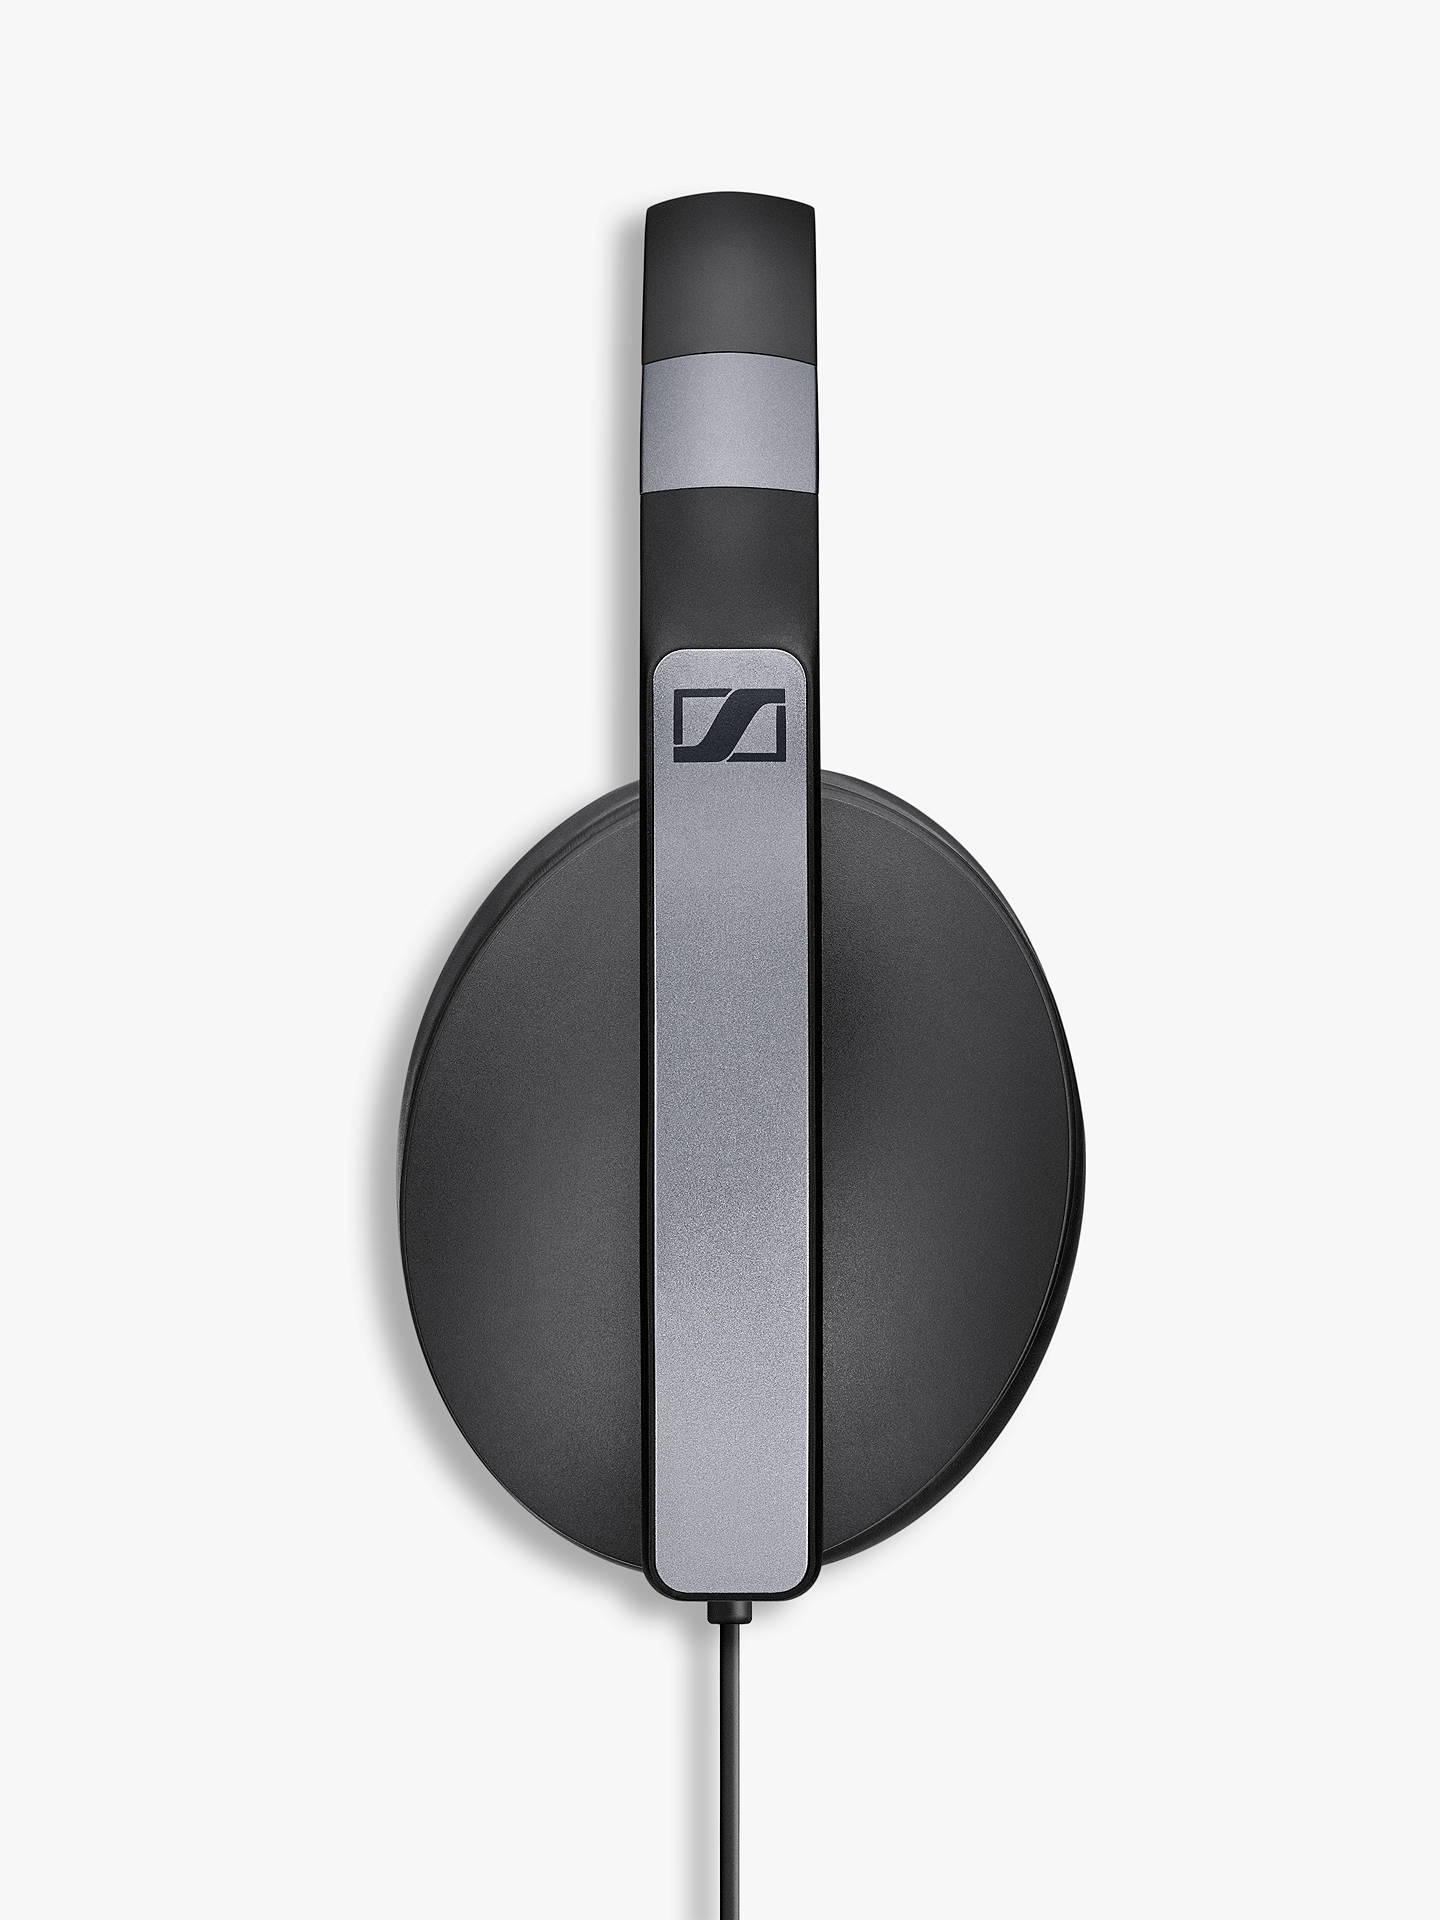 BuySennheiser HD 4.20s Over-Ear Headphones with Inline Microphone & Remote, Black Online at johnlewis.com